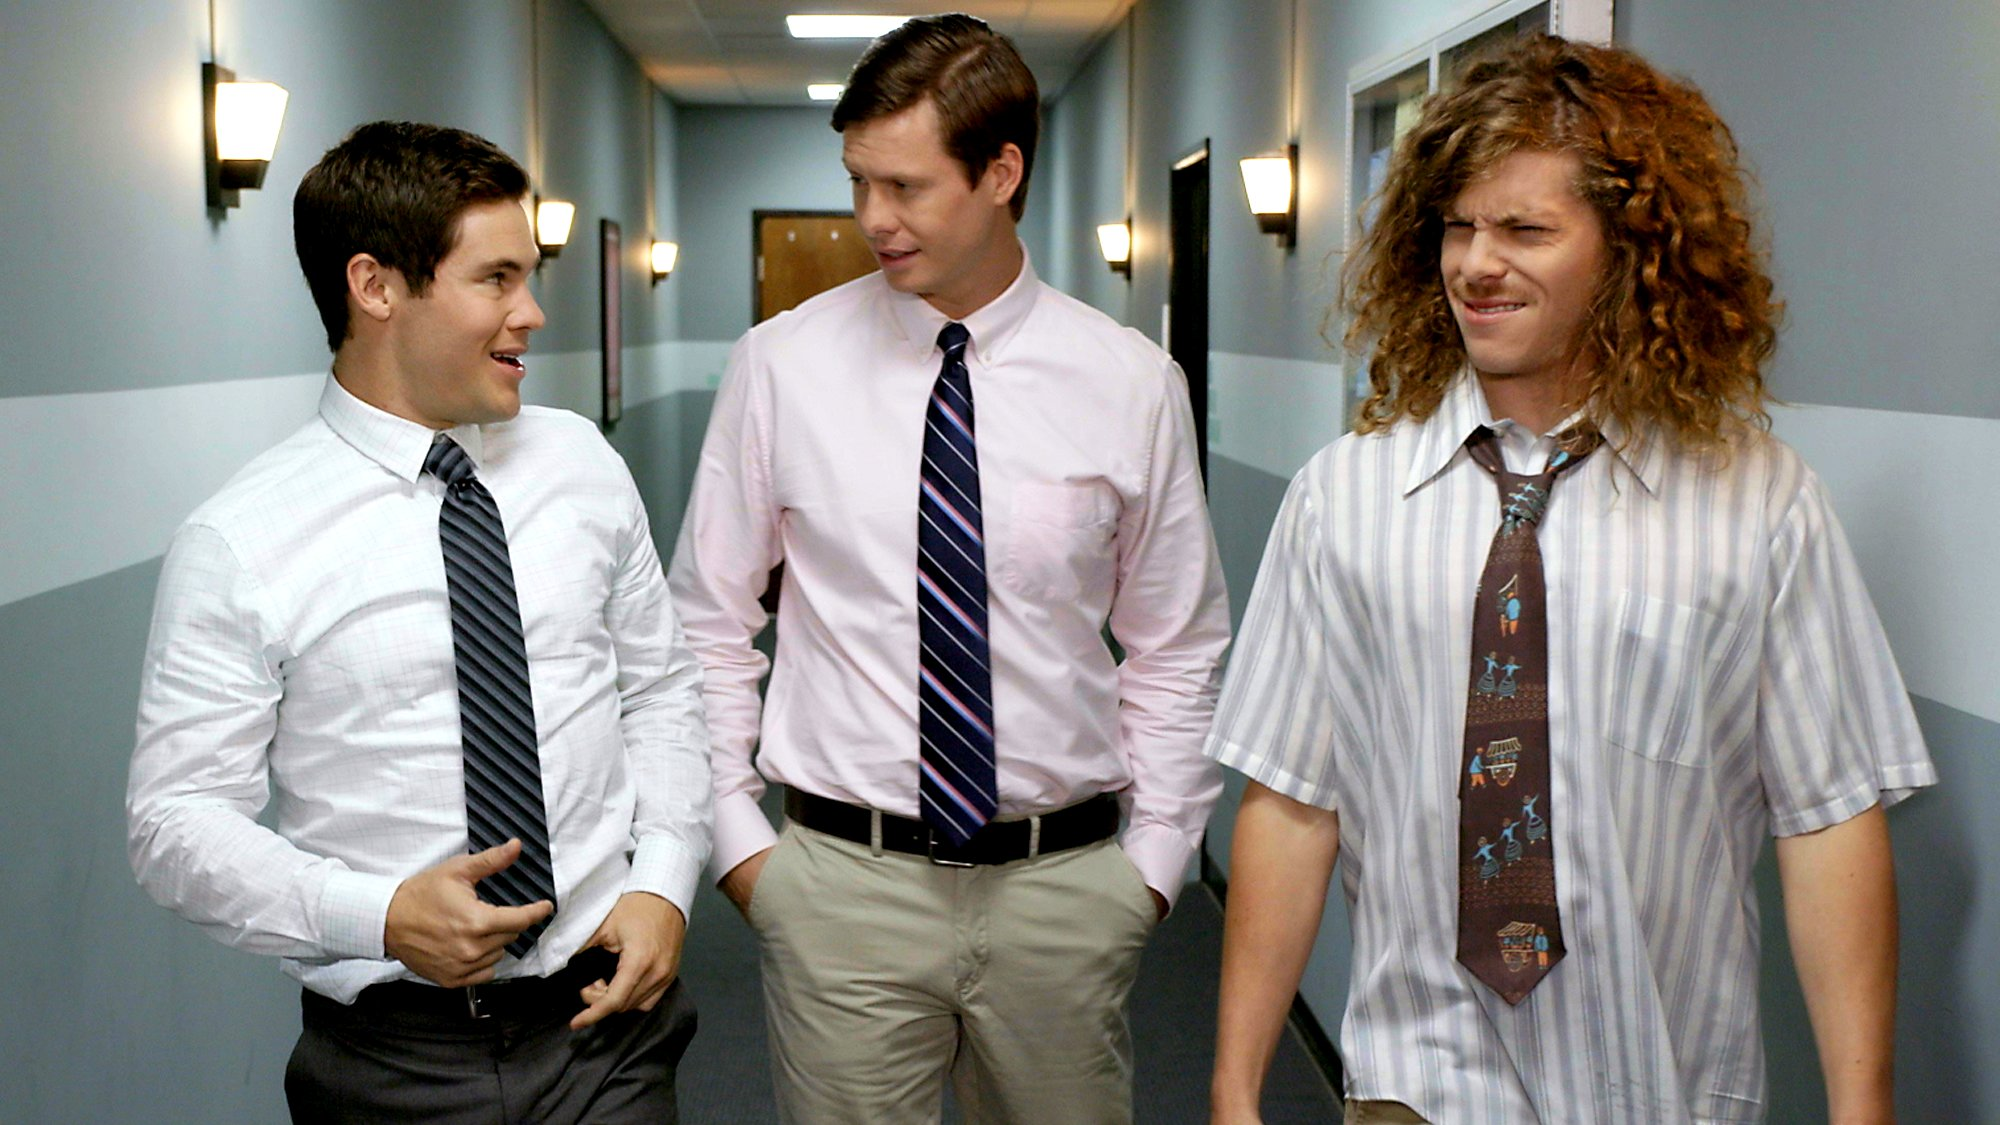 Guy from workaholics